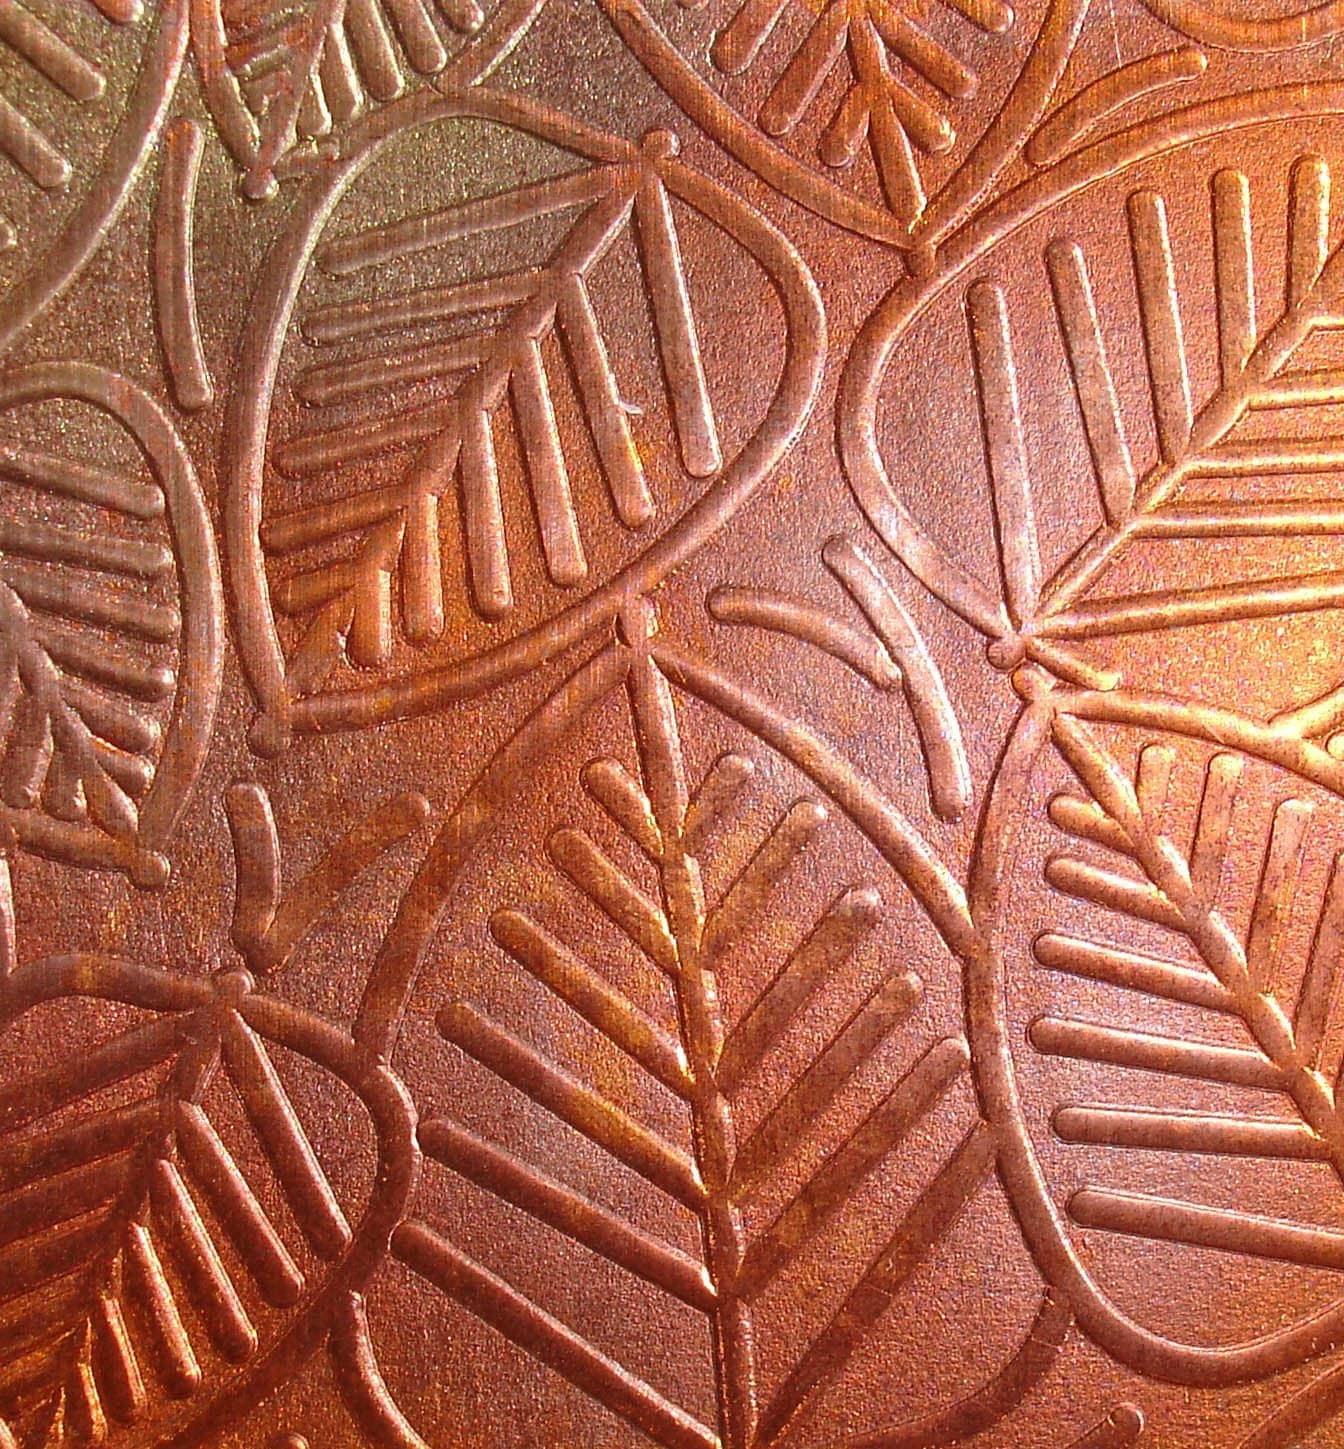 Textured Copper Sheet Metal Patina Copper Sheet Metal Leaves